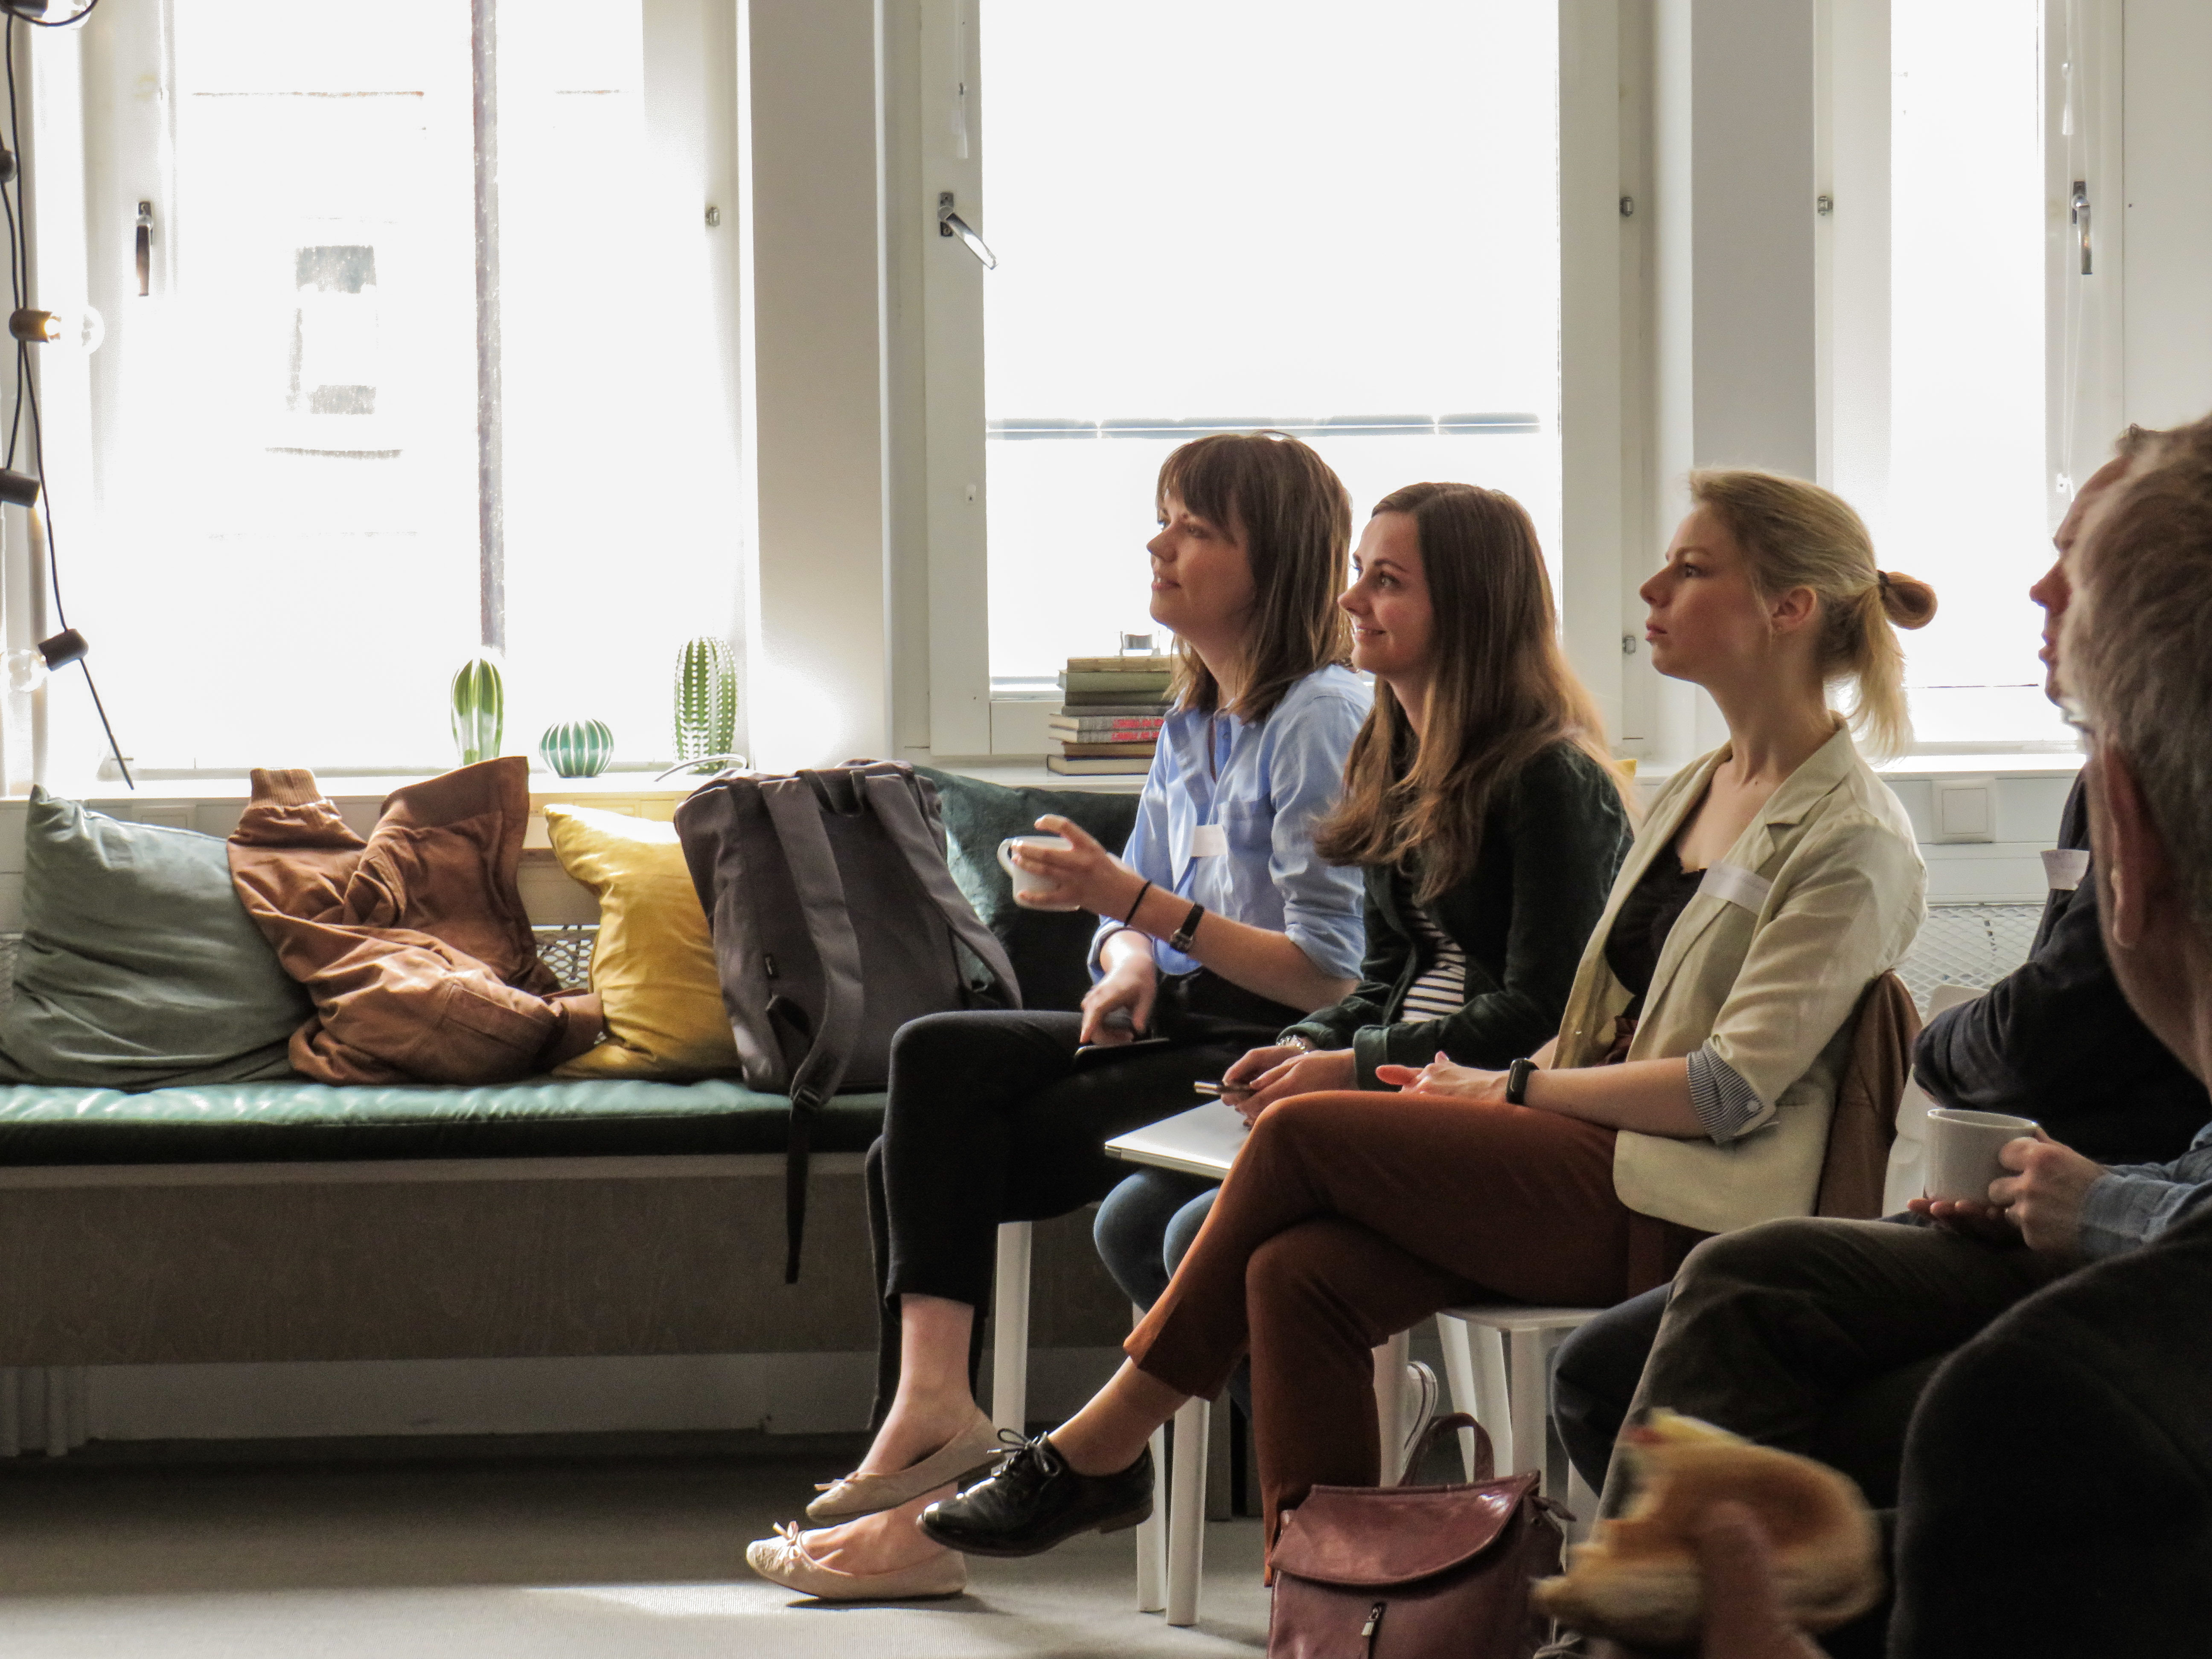 Onlookers in Stockholm for the recent Accelerator Ambassador Network meetup, hosted by Catherine Edwards from The Local